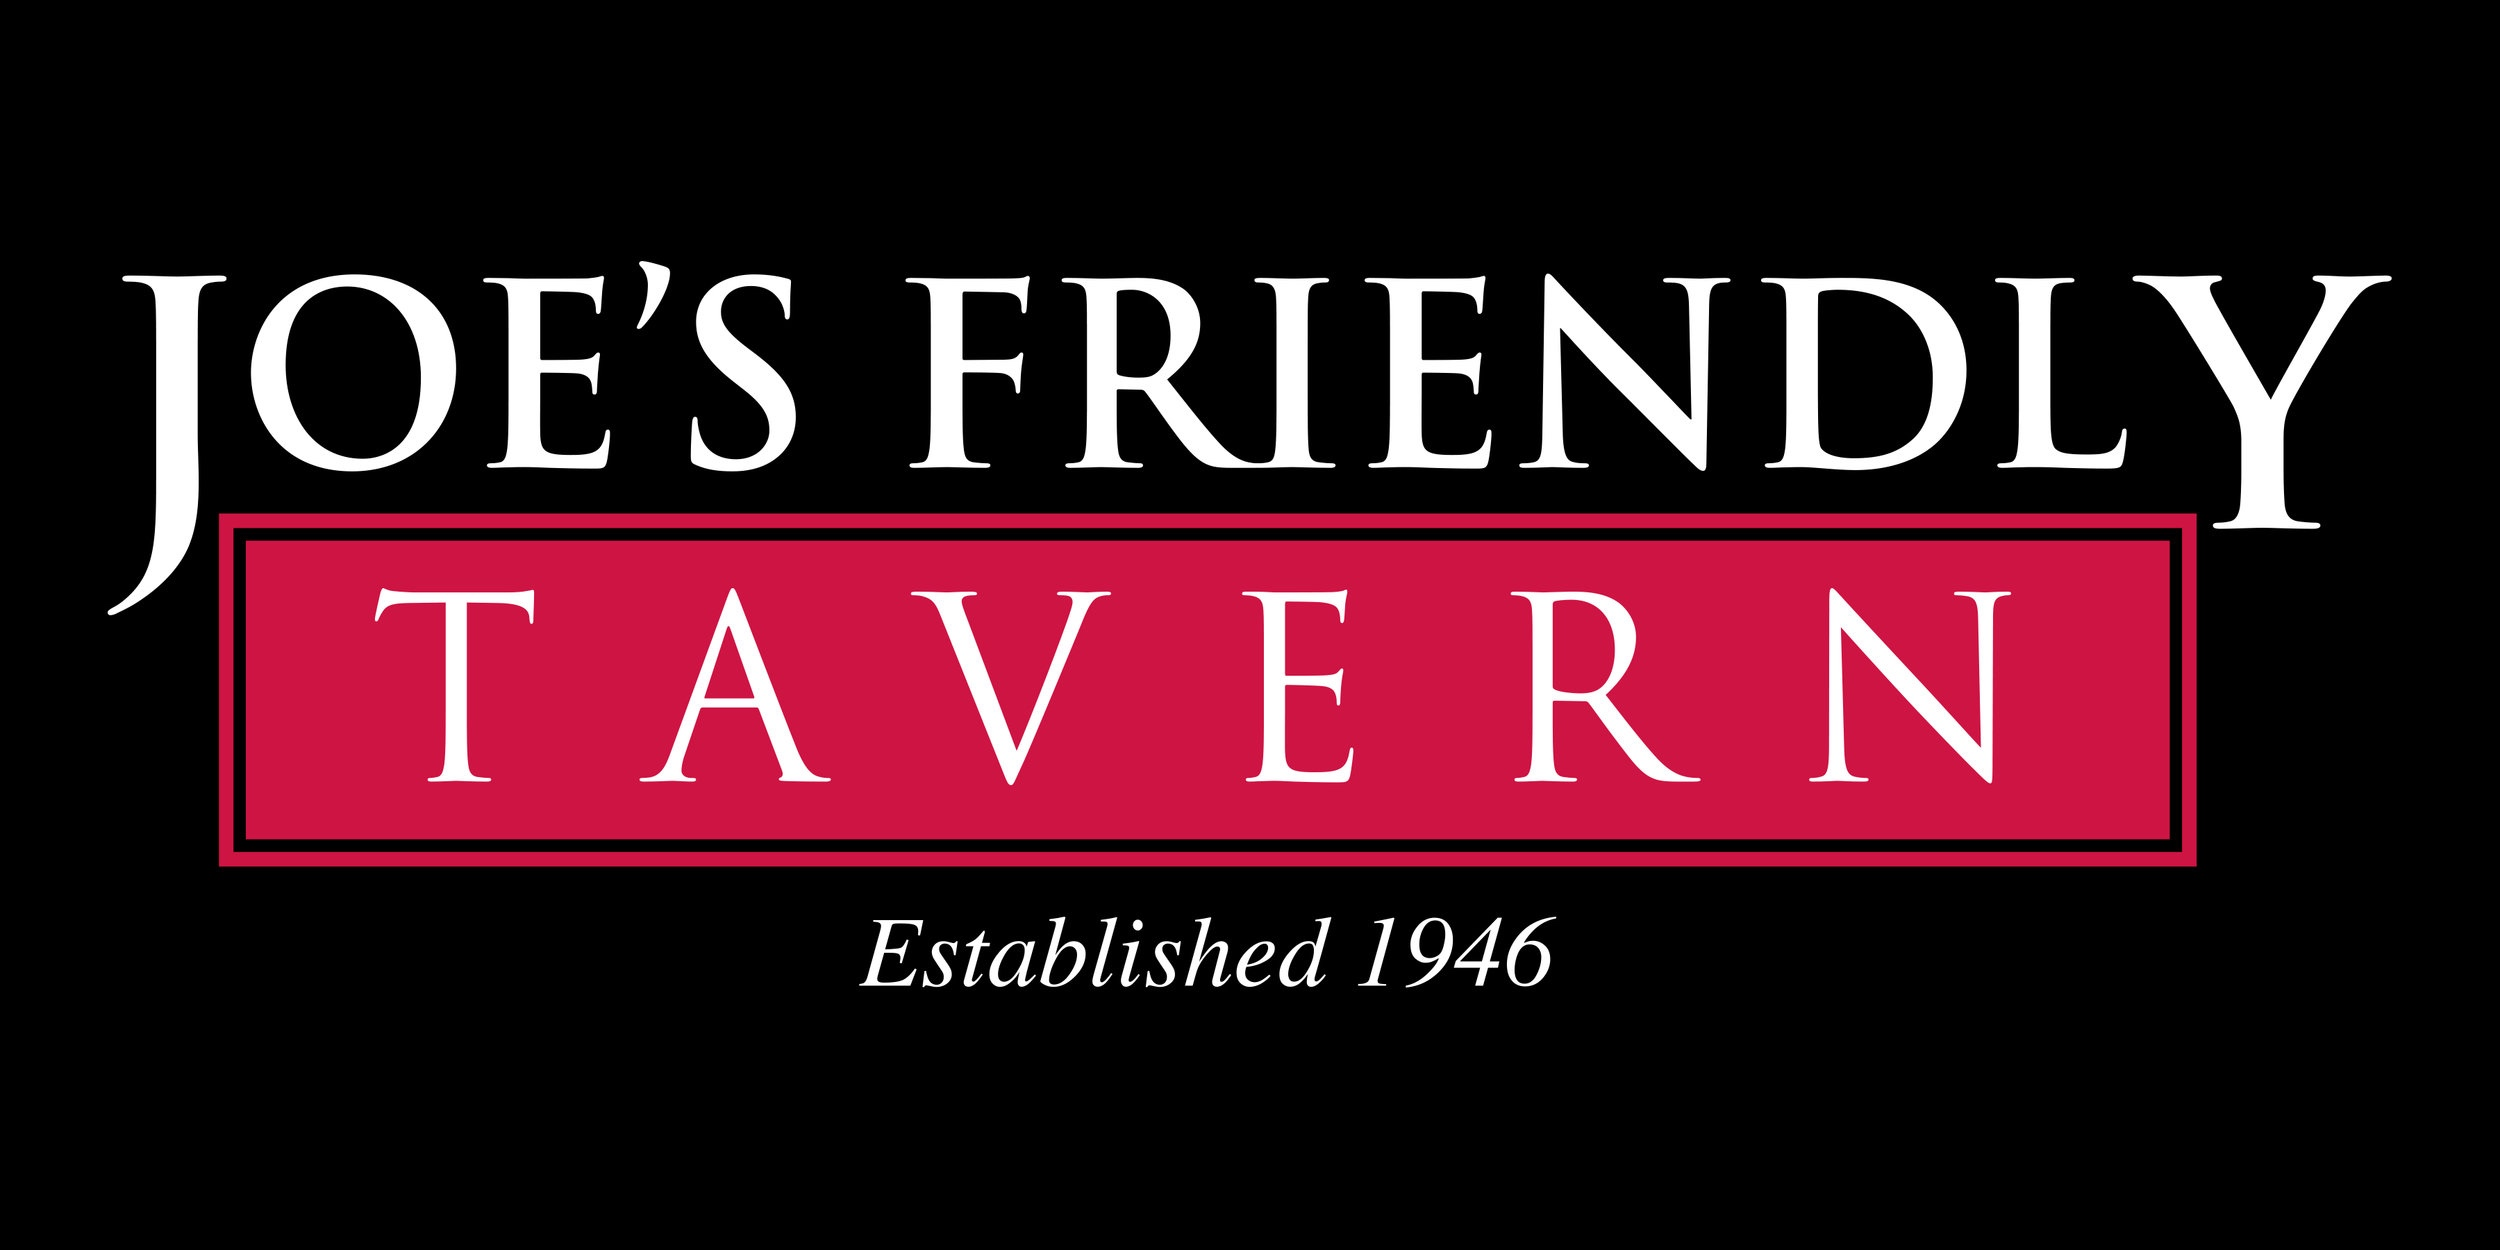 Joe's Friendly Tavern